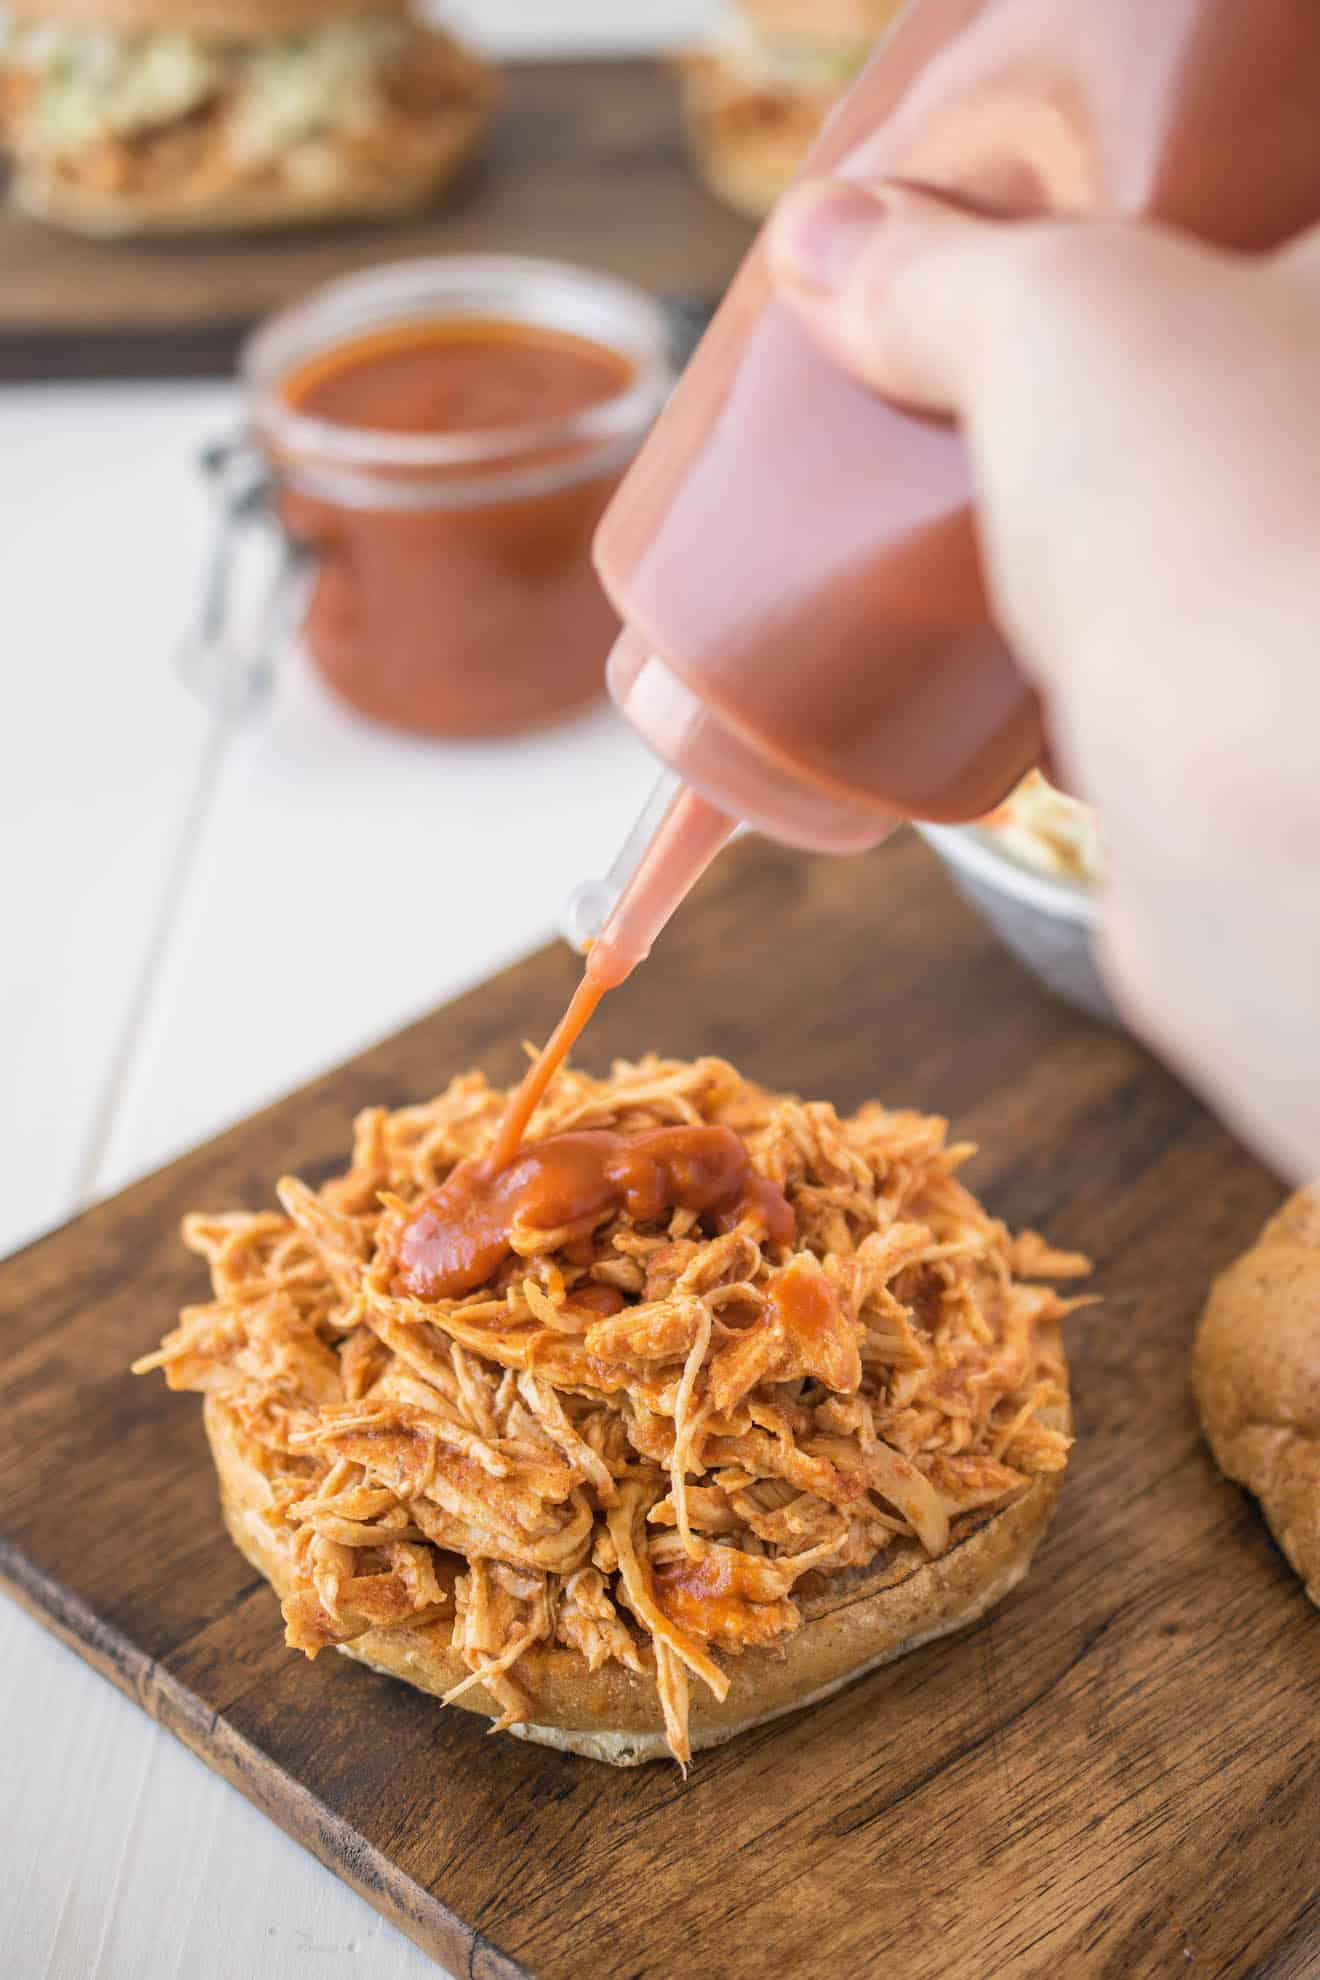 Pouring barbecue sauce on to pulled chicken